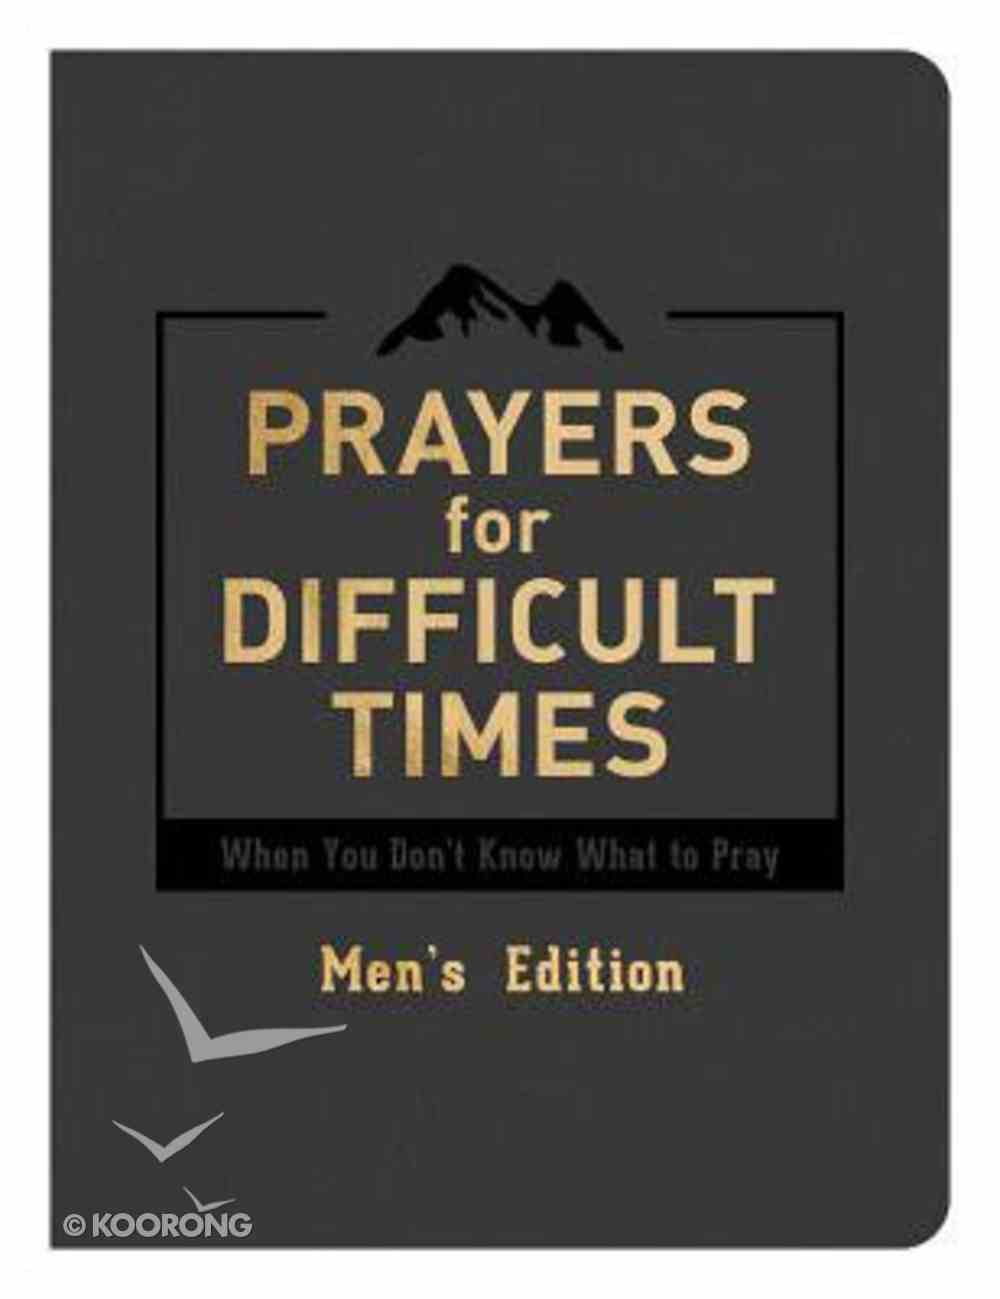 Prayers For Difficult Times: When You Don't Know What to Pray (Men's Edition) Paperback